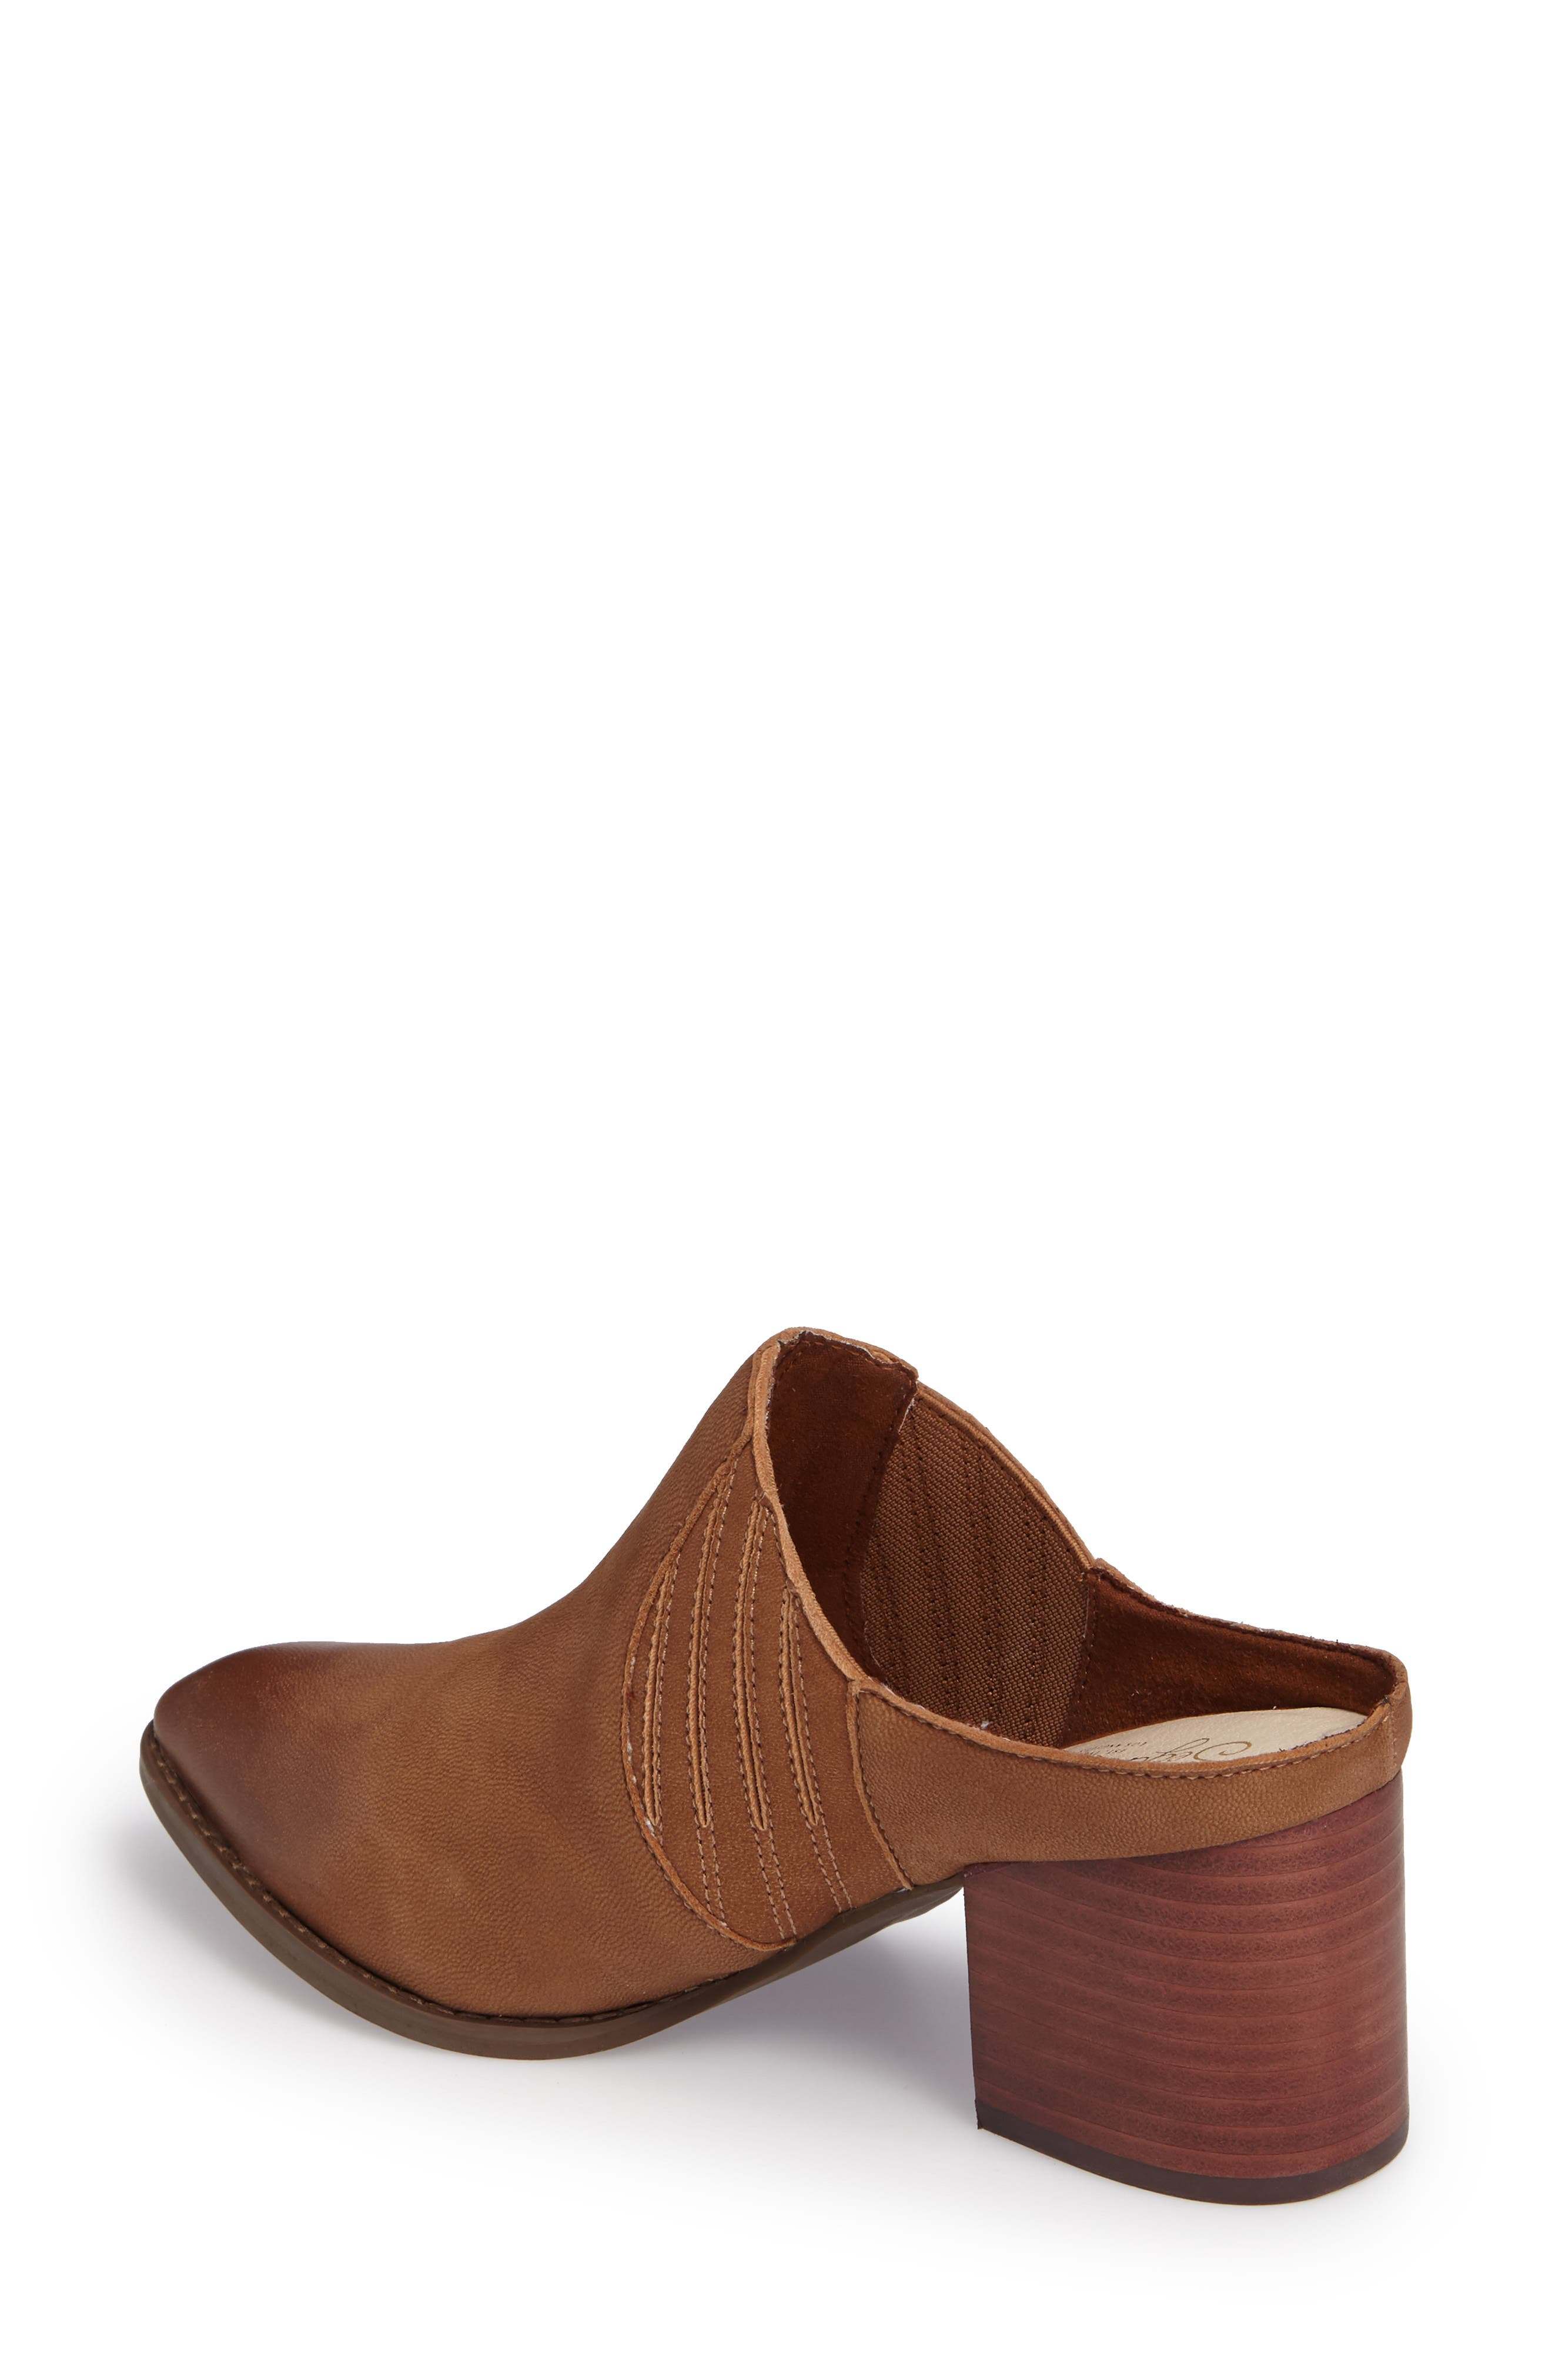 Dialogue Pointy Toe Mule,                             Alternate thumbnail 5, color,